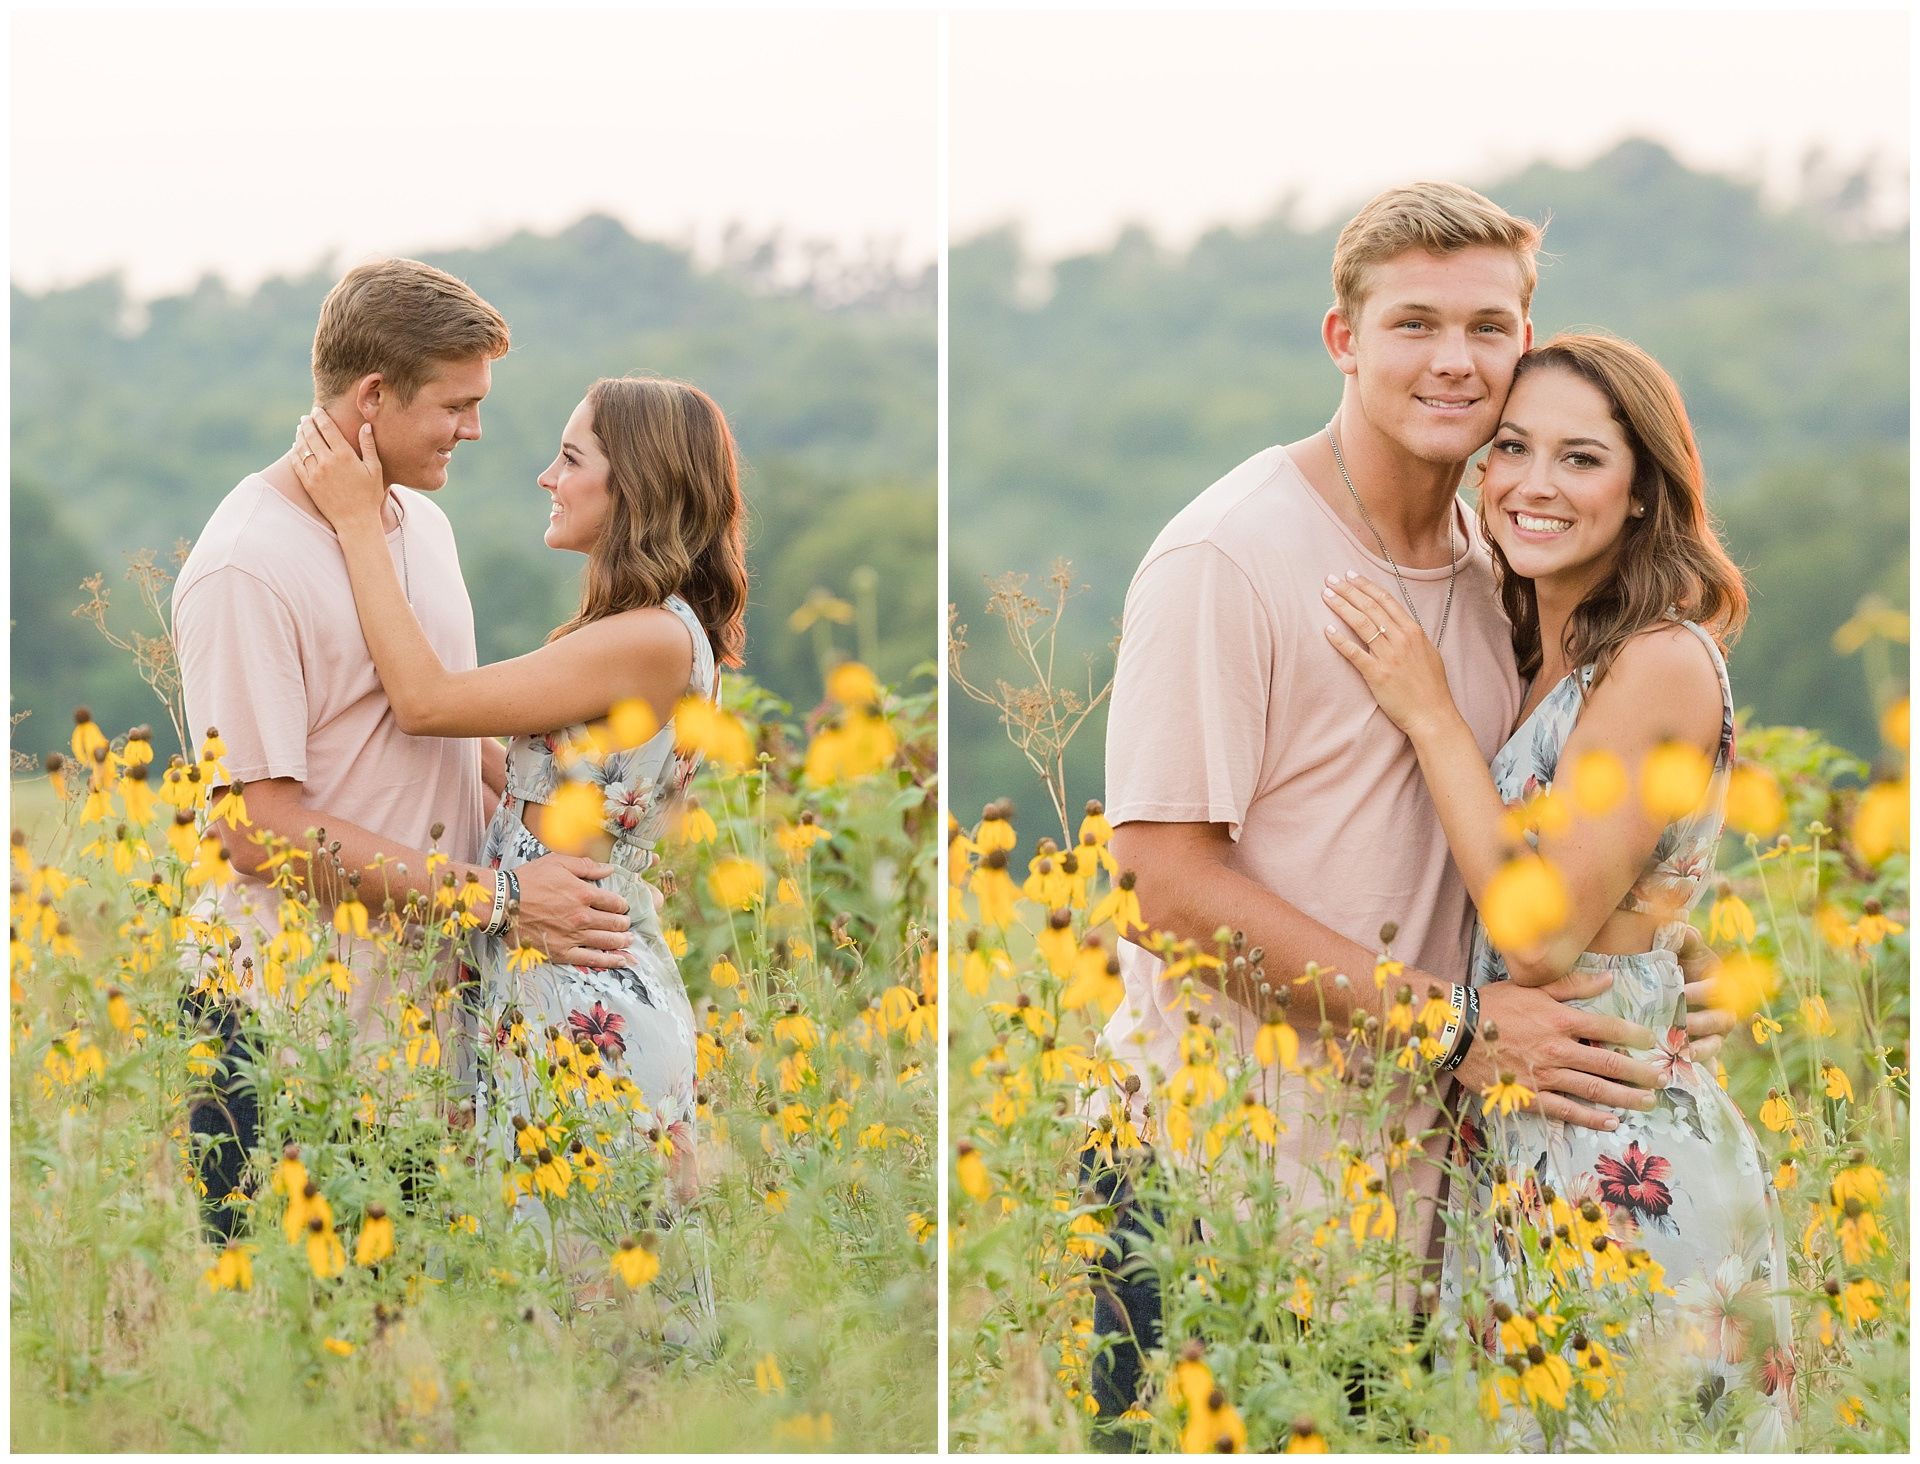 Summer Wildflower Engagement Session at Shaker Village in